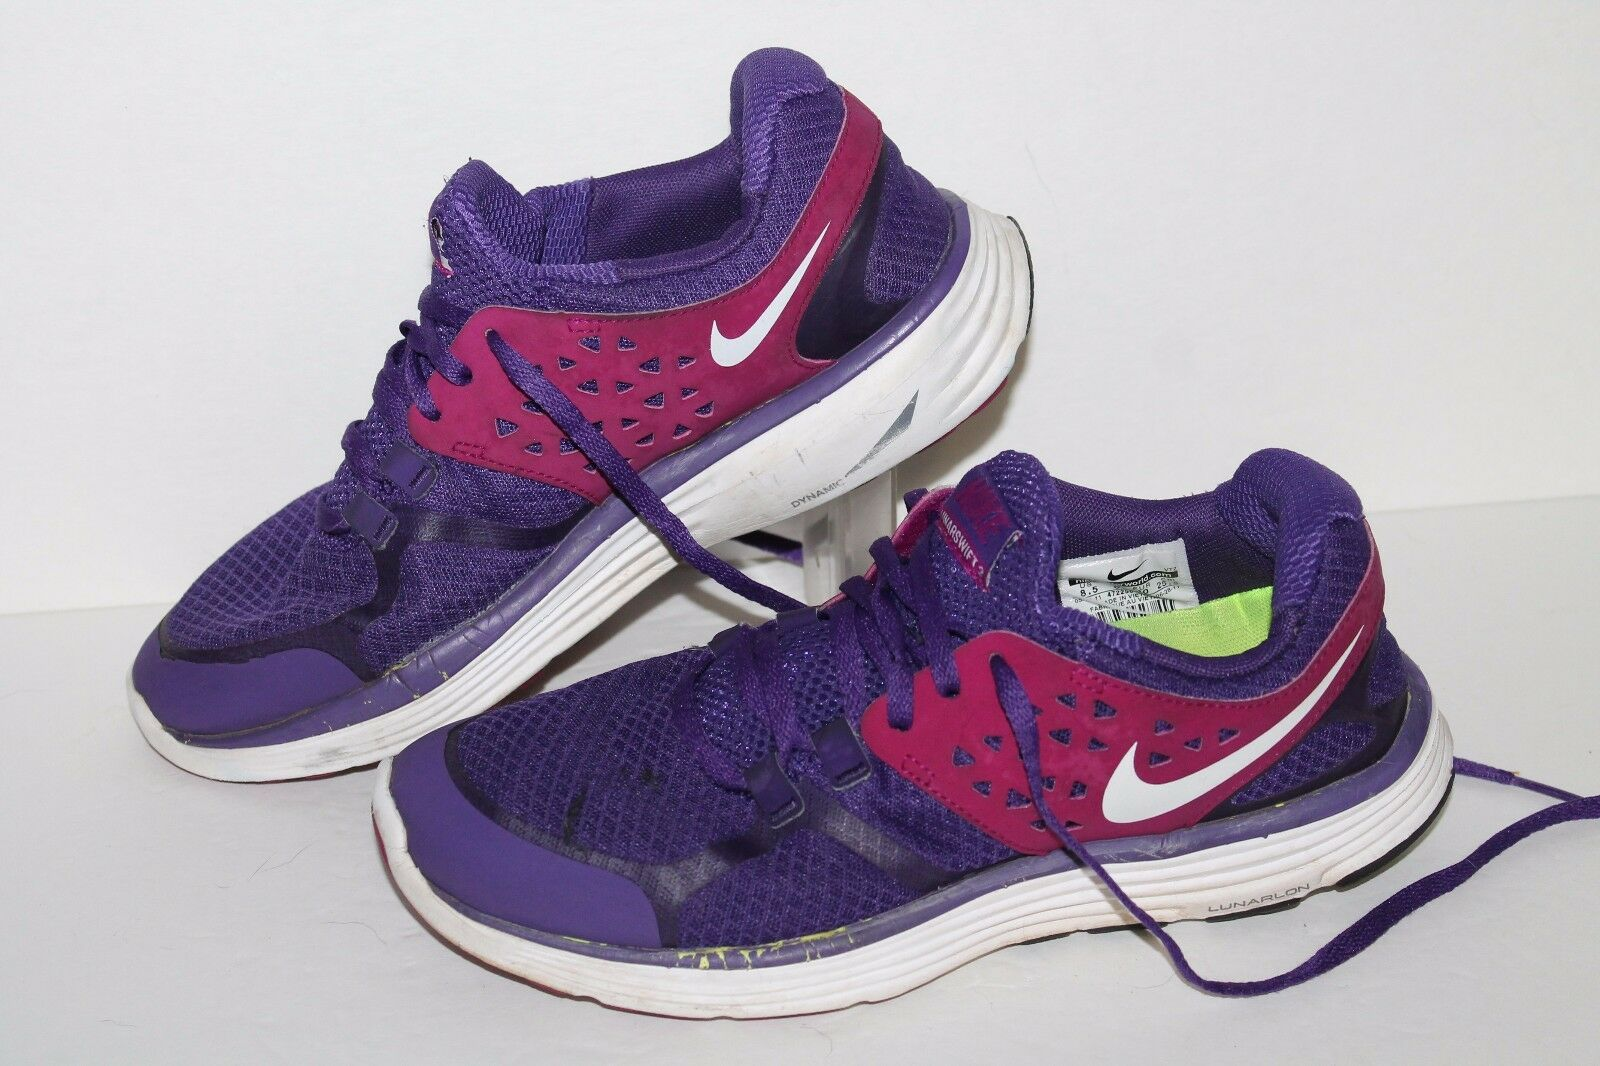 Nike Lunarswift 3 + Running Shoes, Club Ppl/Vivid Grape, Women's 8.5 Special limited time